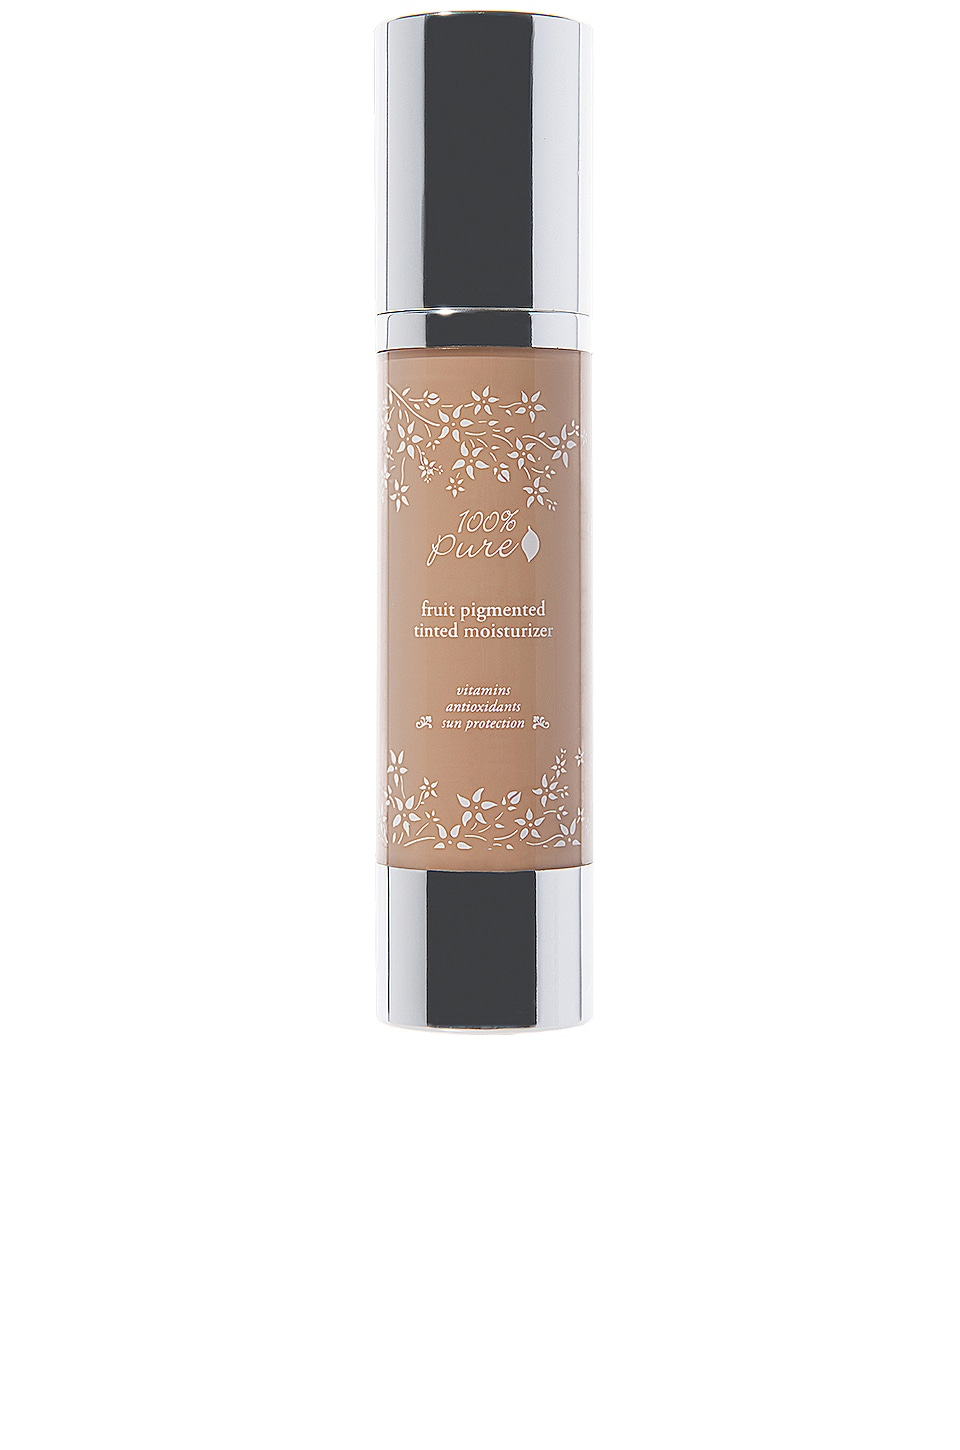 100% Pure Tinted Moisturizer with Sun Protection in Toffee